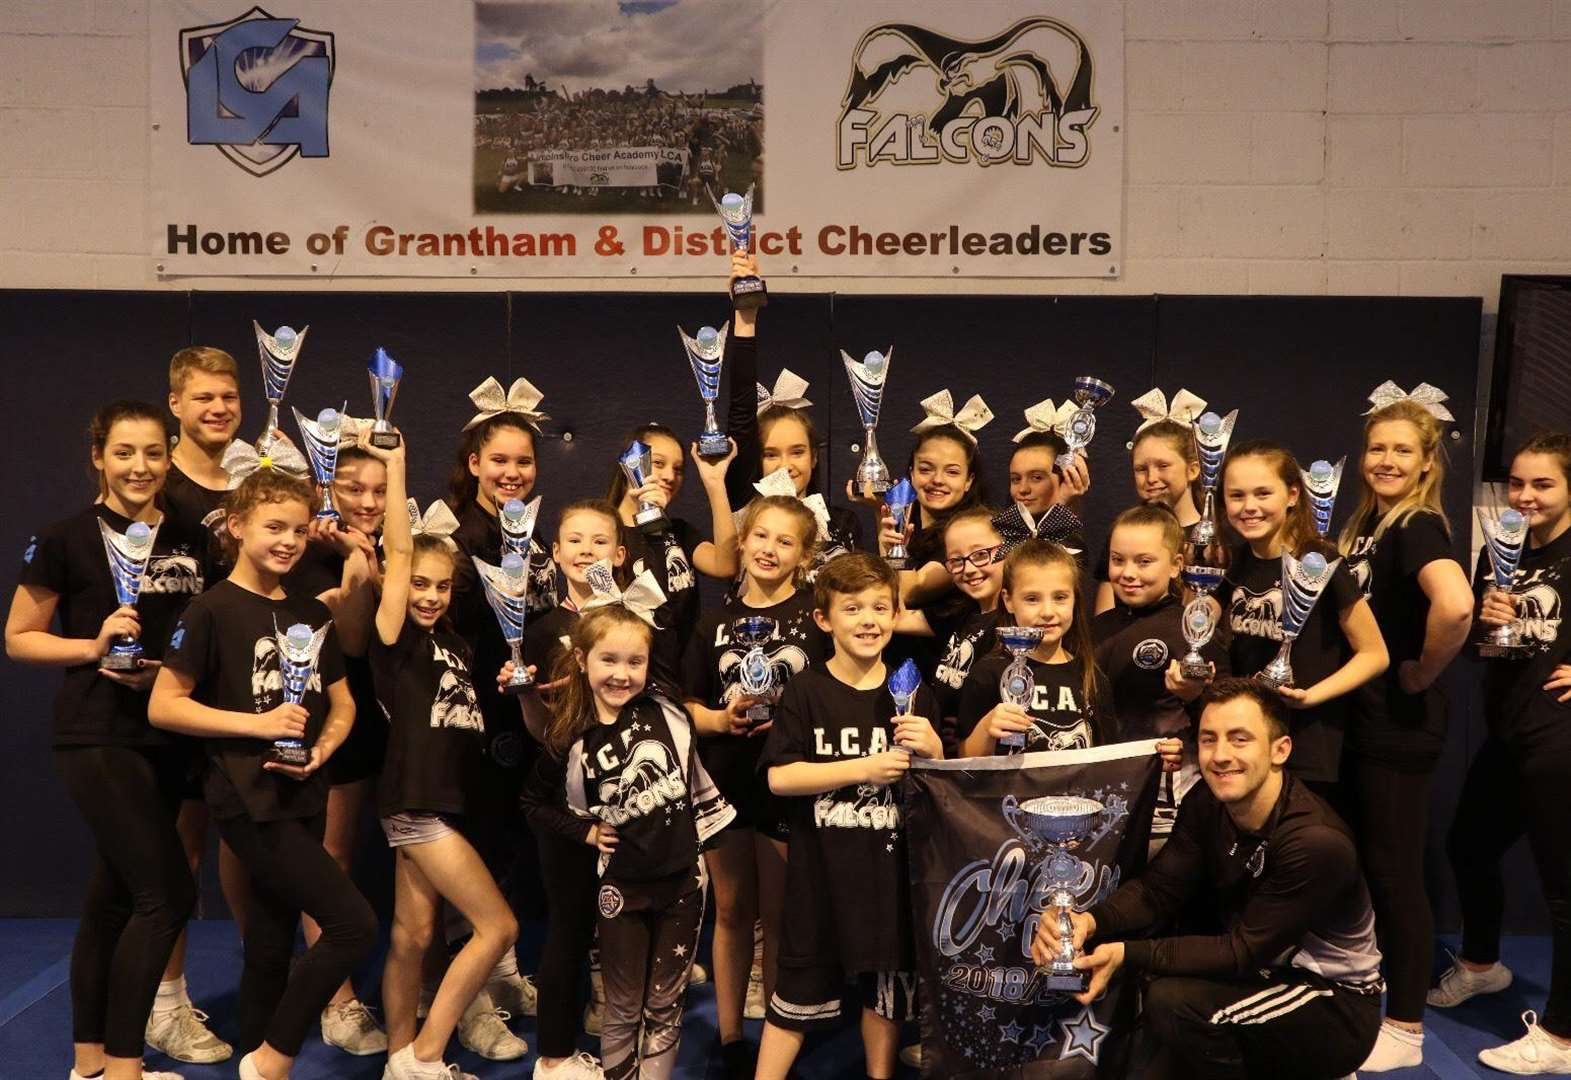 Grantham cheerleaders win haul of trophies at festival